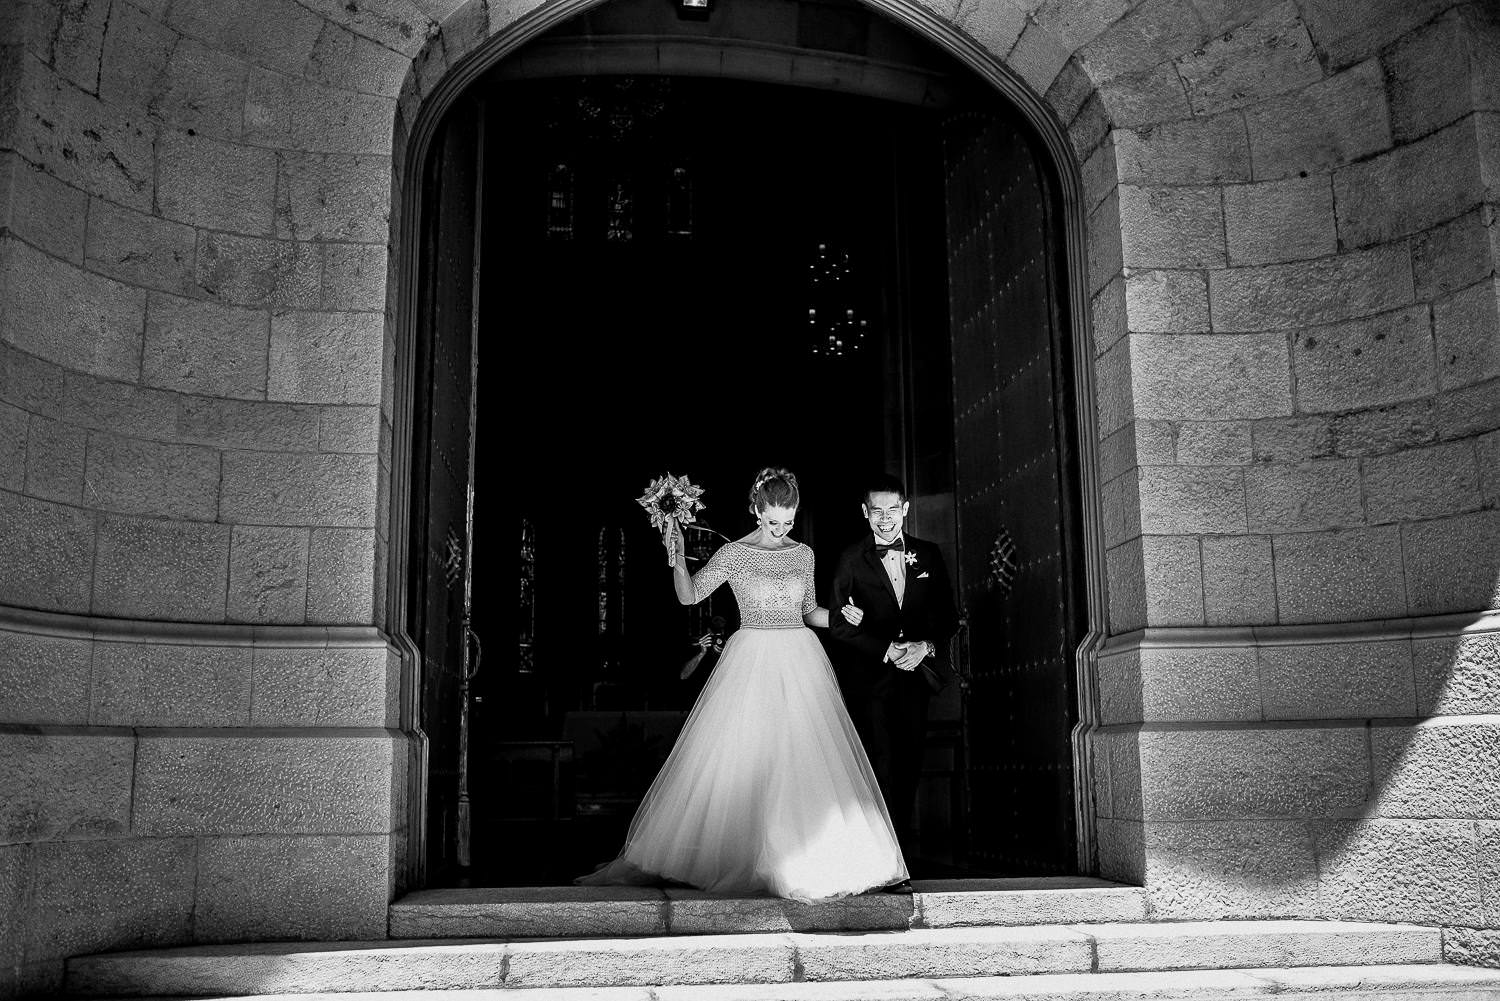 documentary wedding photographer barcelona wedding tibidabo church